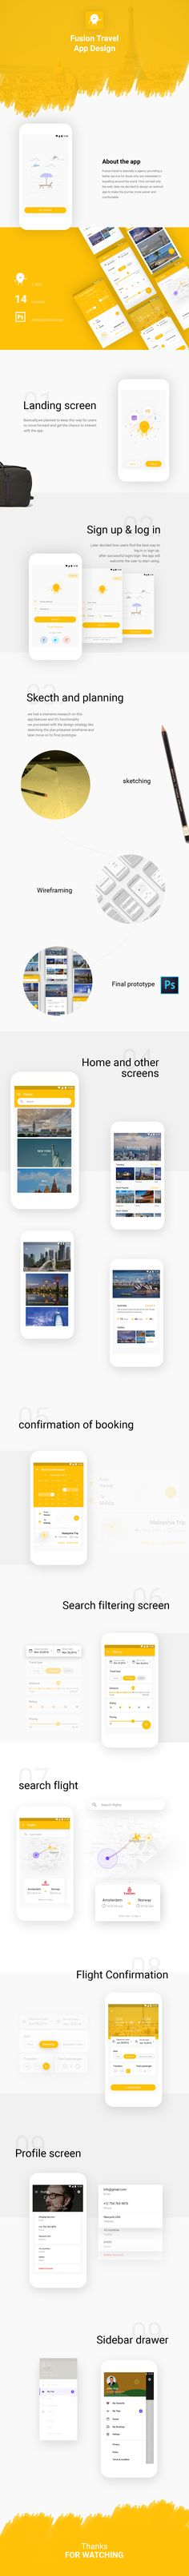 Hello guys,Fusion travel is basically a agency providing a better service for those who are interested in travelling around the world. First we had only the web, later we decided to design an android app to make the journey more easier and comfortable.